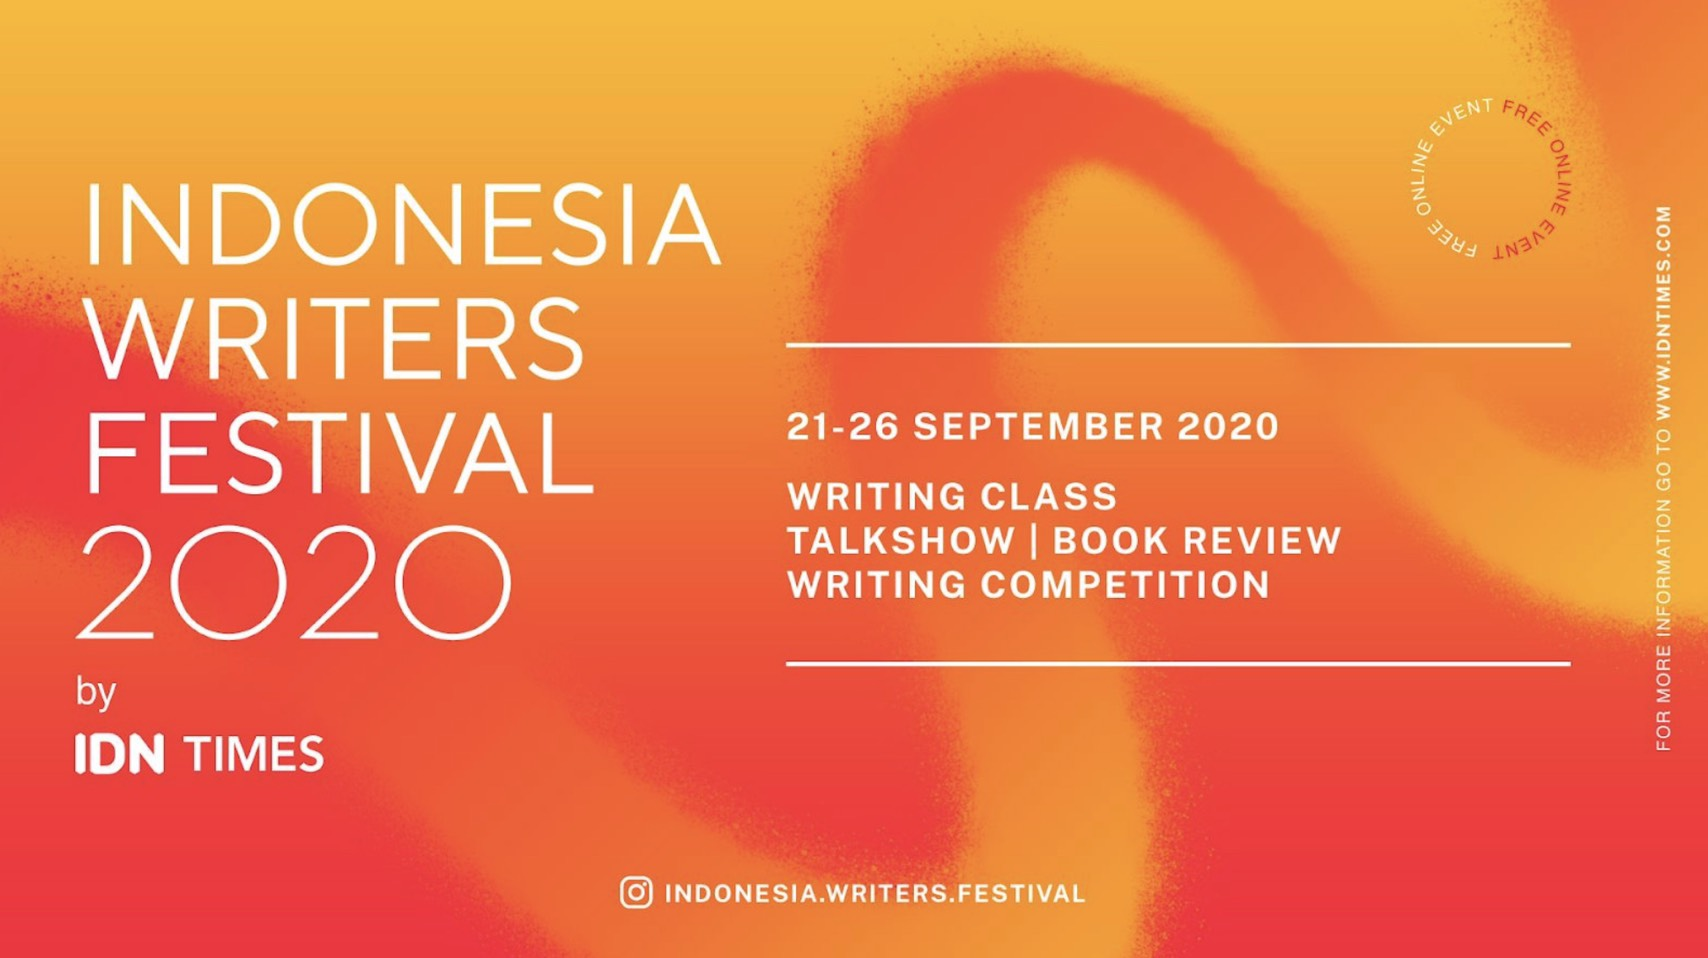 Festival Menulis Indonesia Writers Festival 2020 Hadir Secara Virtual di Bulan September